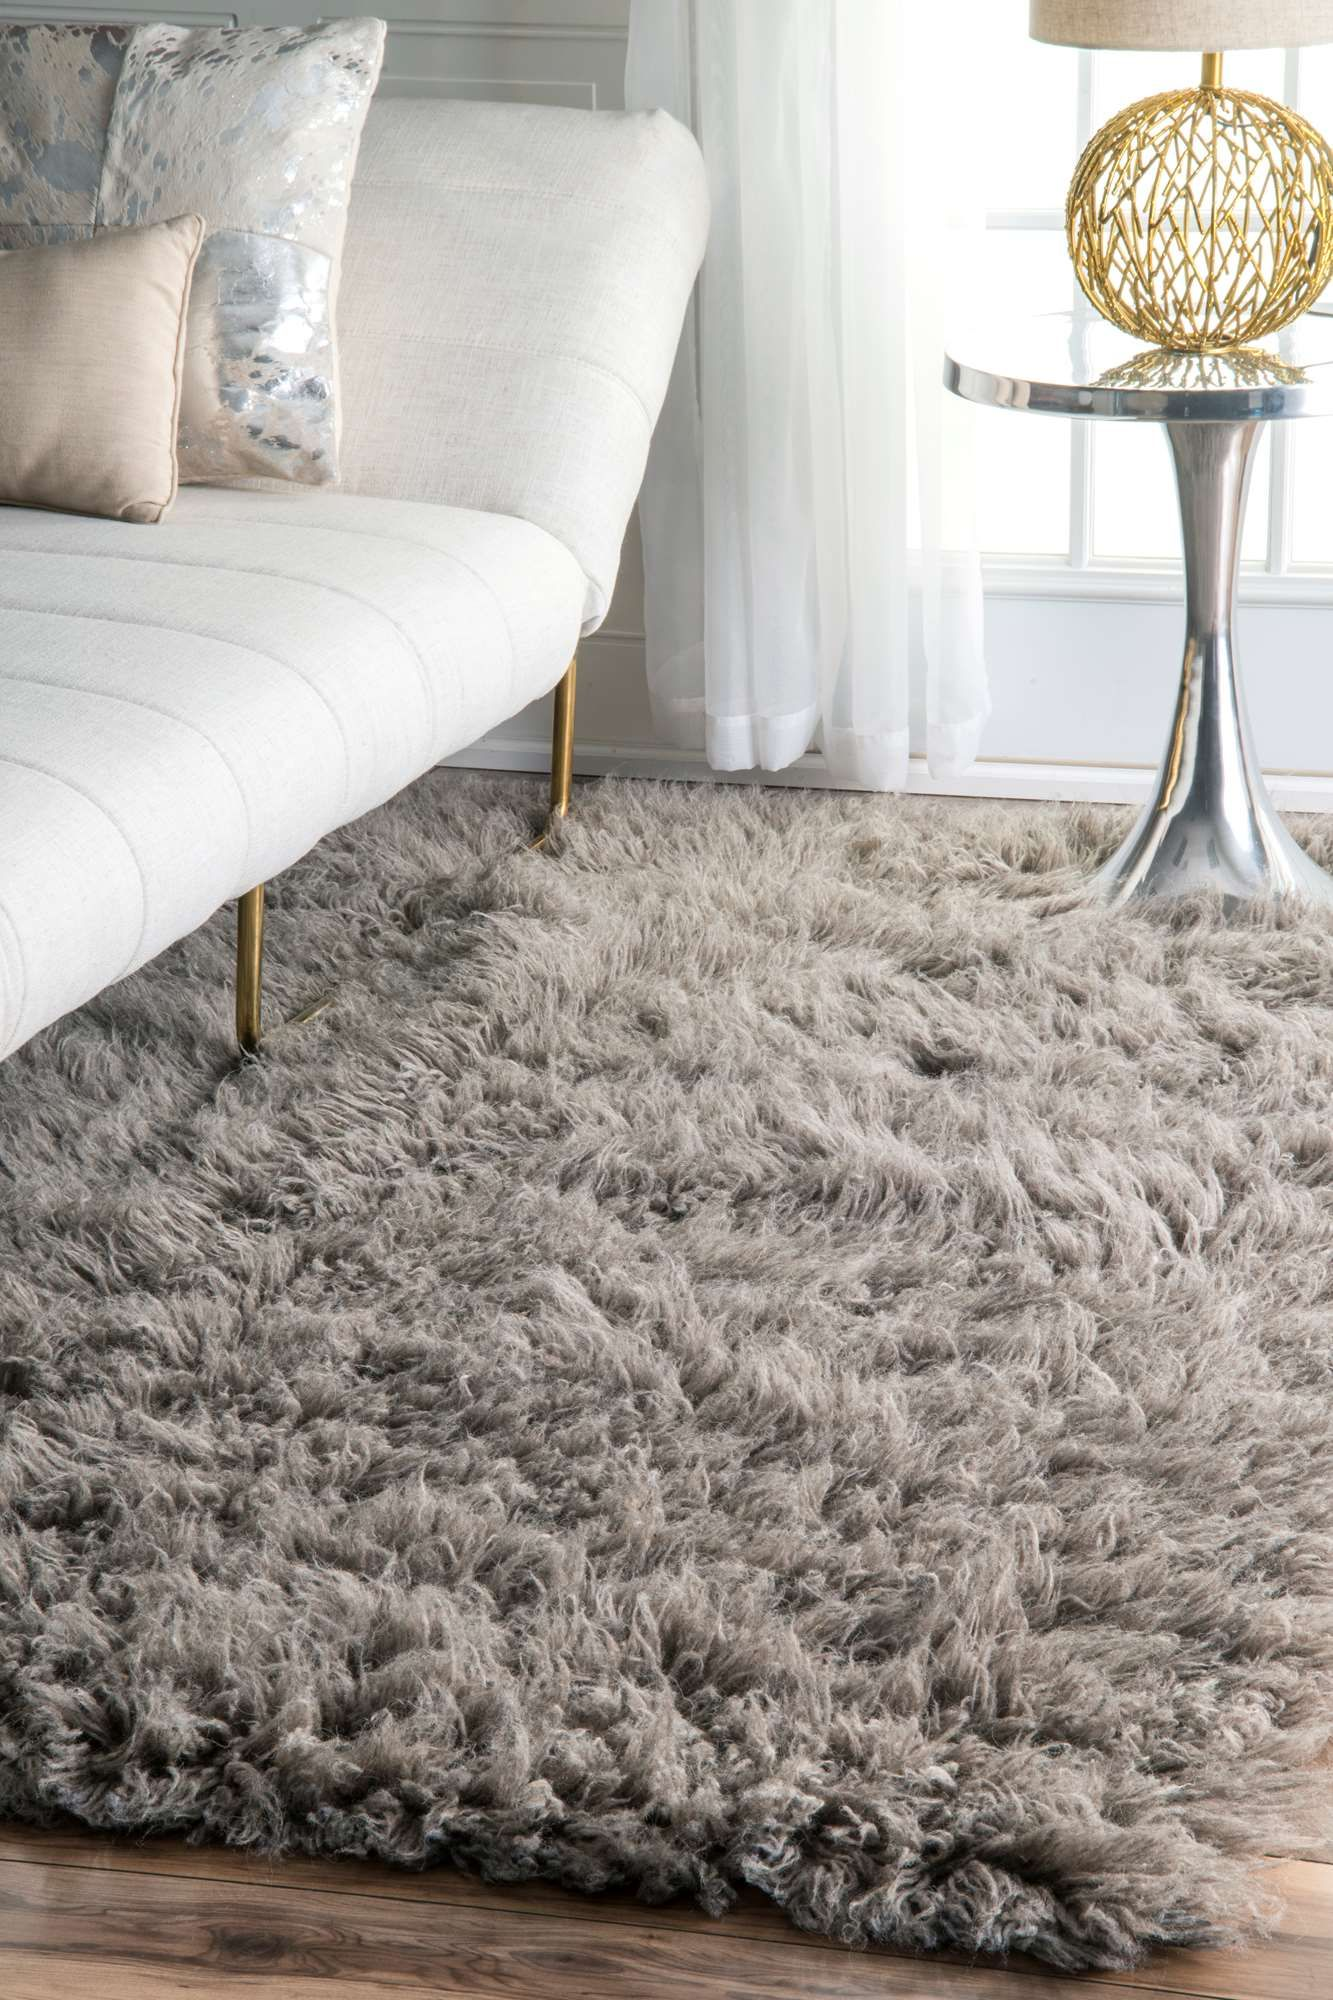 The Rugs USA Standard Shag Greek Flokati Rug Is An Affordable Option For  Anyoneu2026